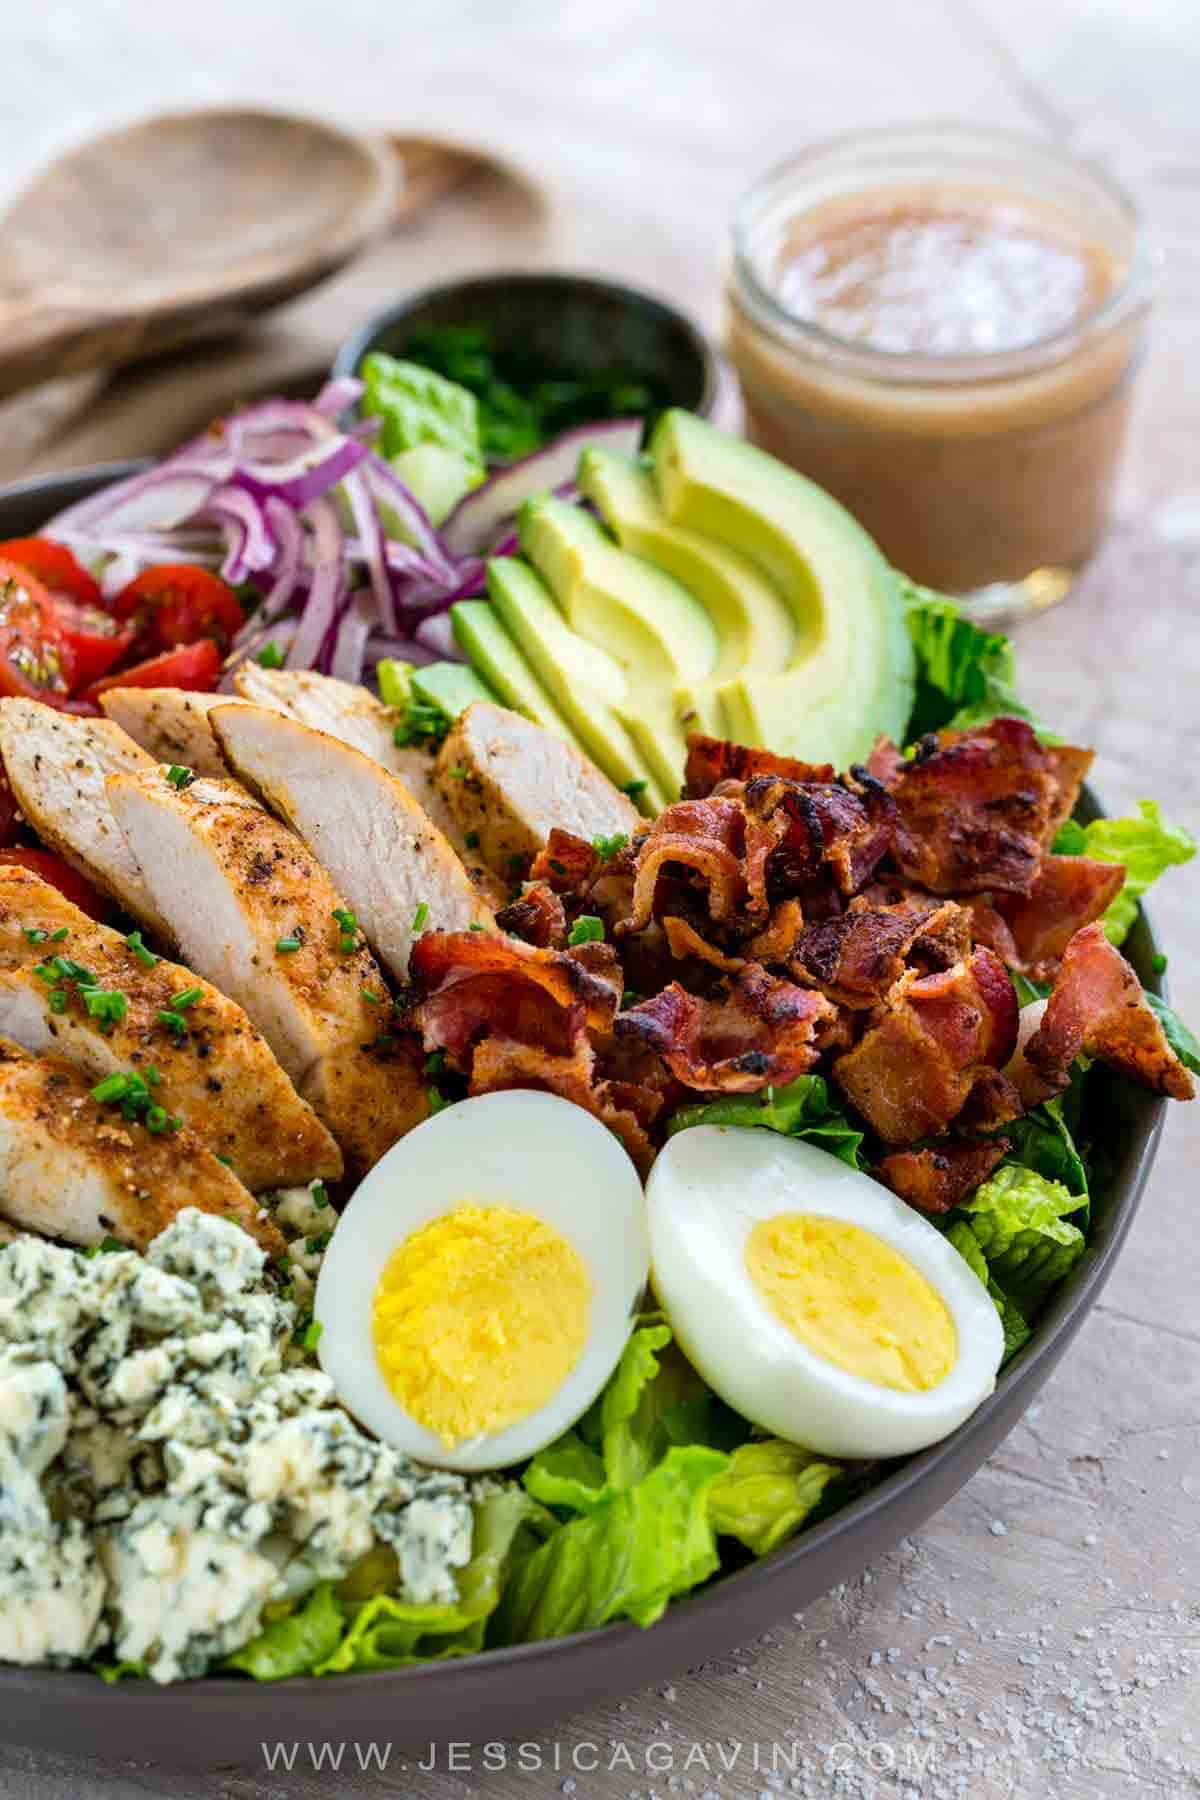 The cobb salad is a main-dish American garden salad that\'s created with chicken, bacon, eggs, avocado, tomato, red onions, blue cheese, and drizzled with a tangy red wine vinegar dressing. #cobbsalad #salad #entreesalad